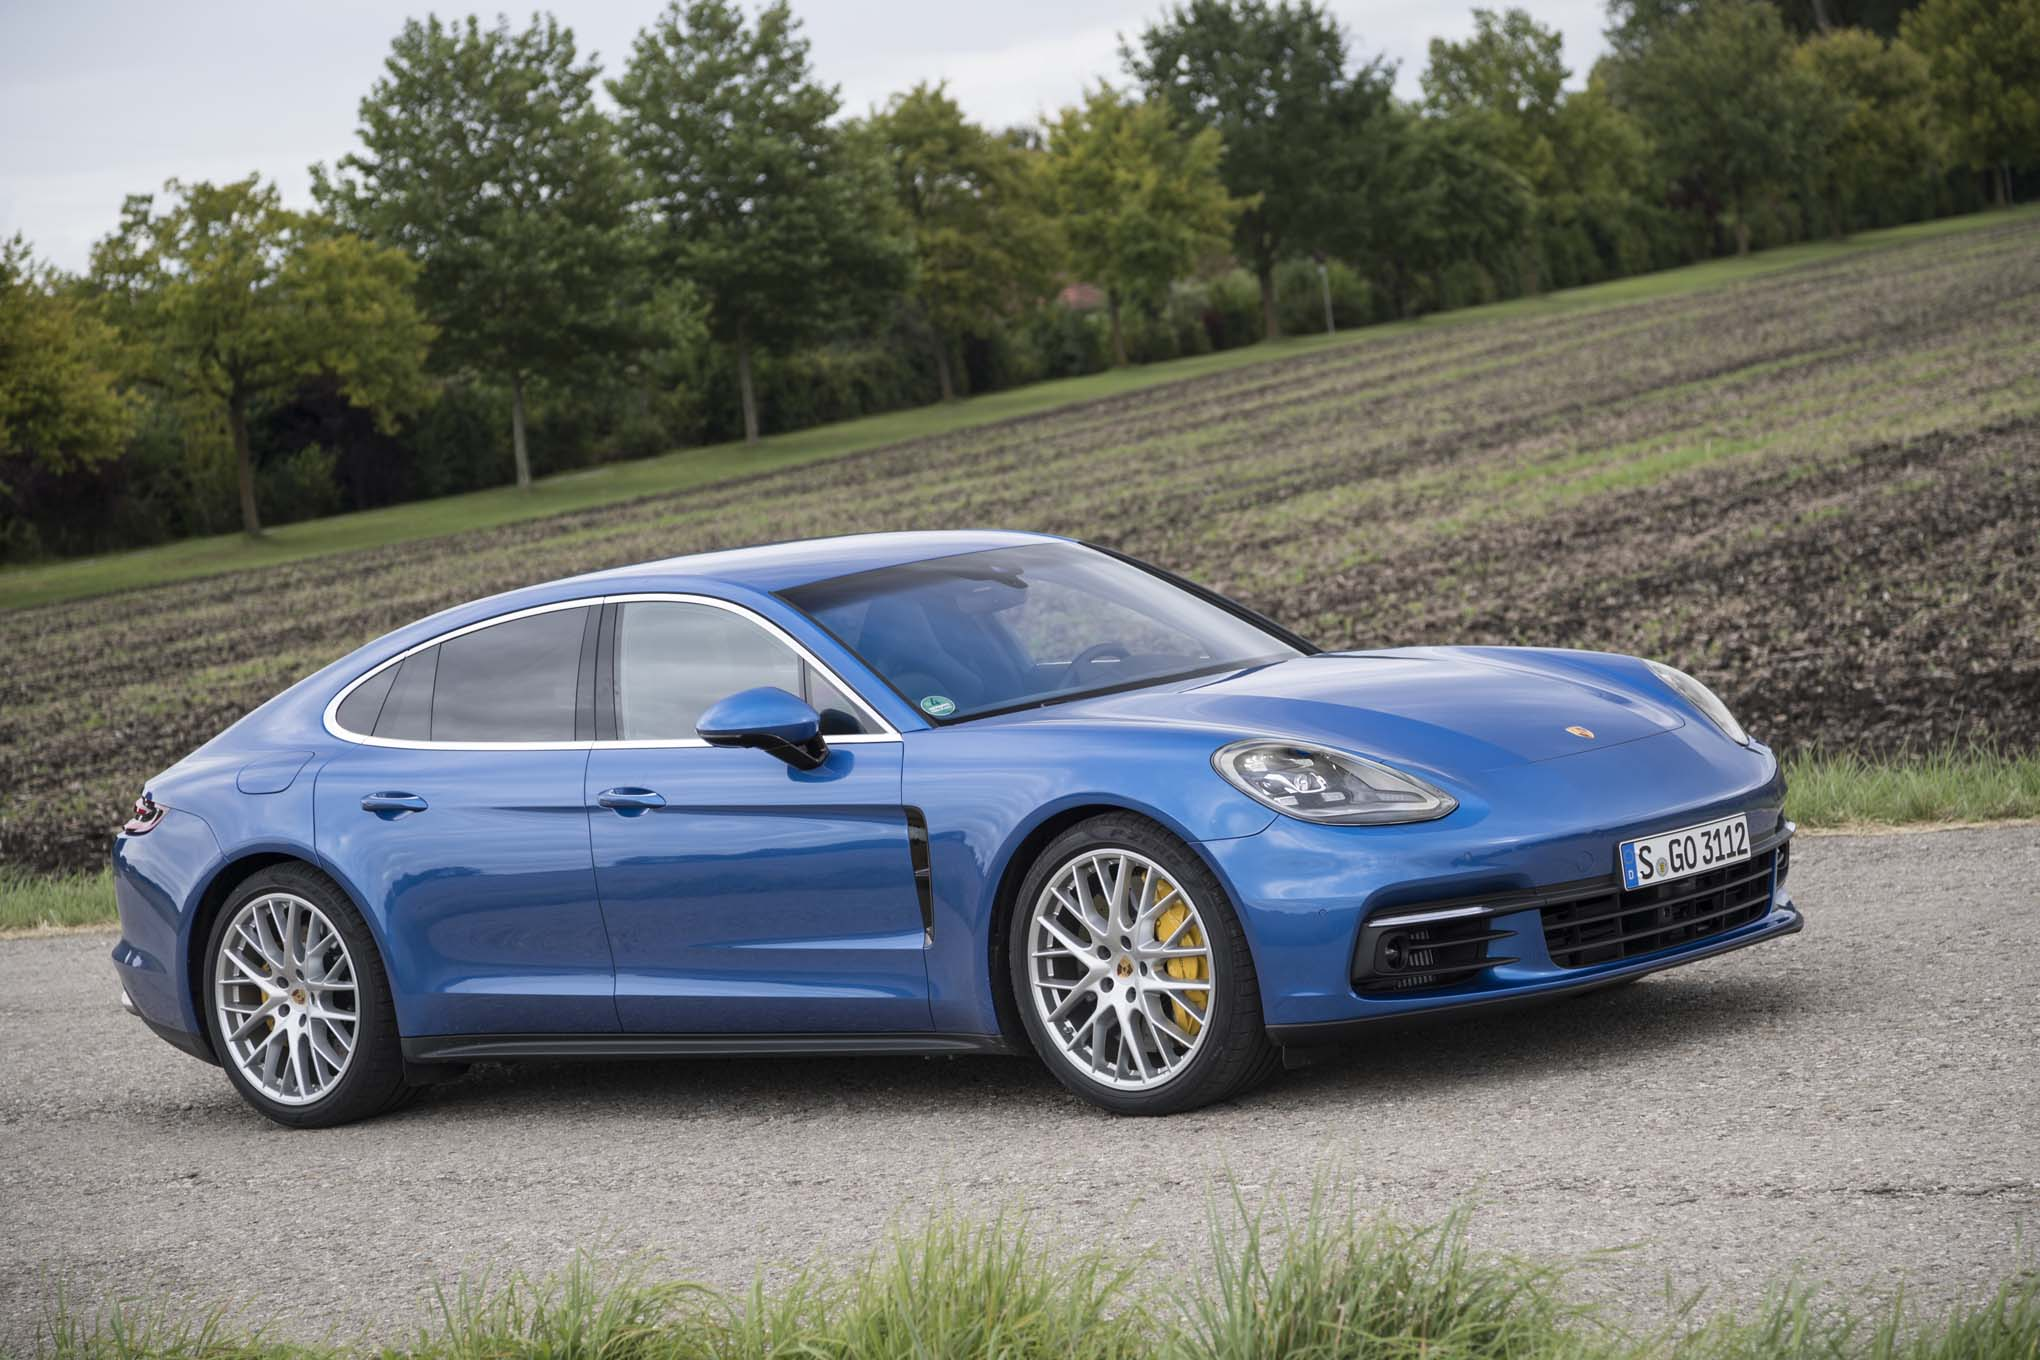 2017 Porsche Panamera 4s First Drive Review Automobile